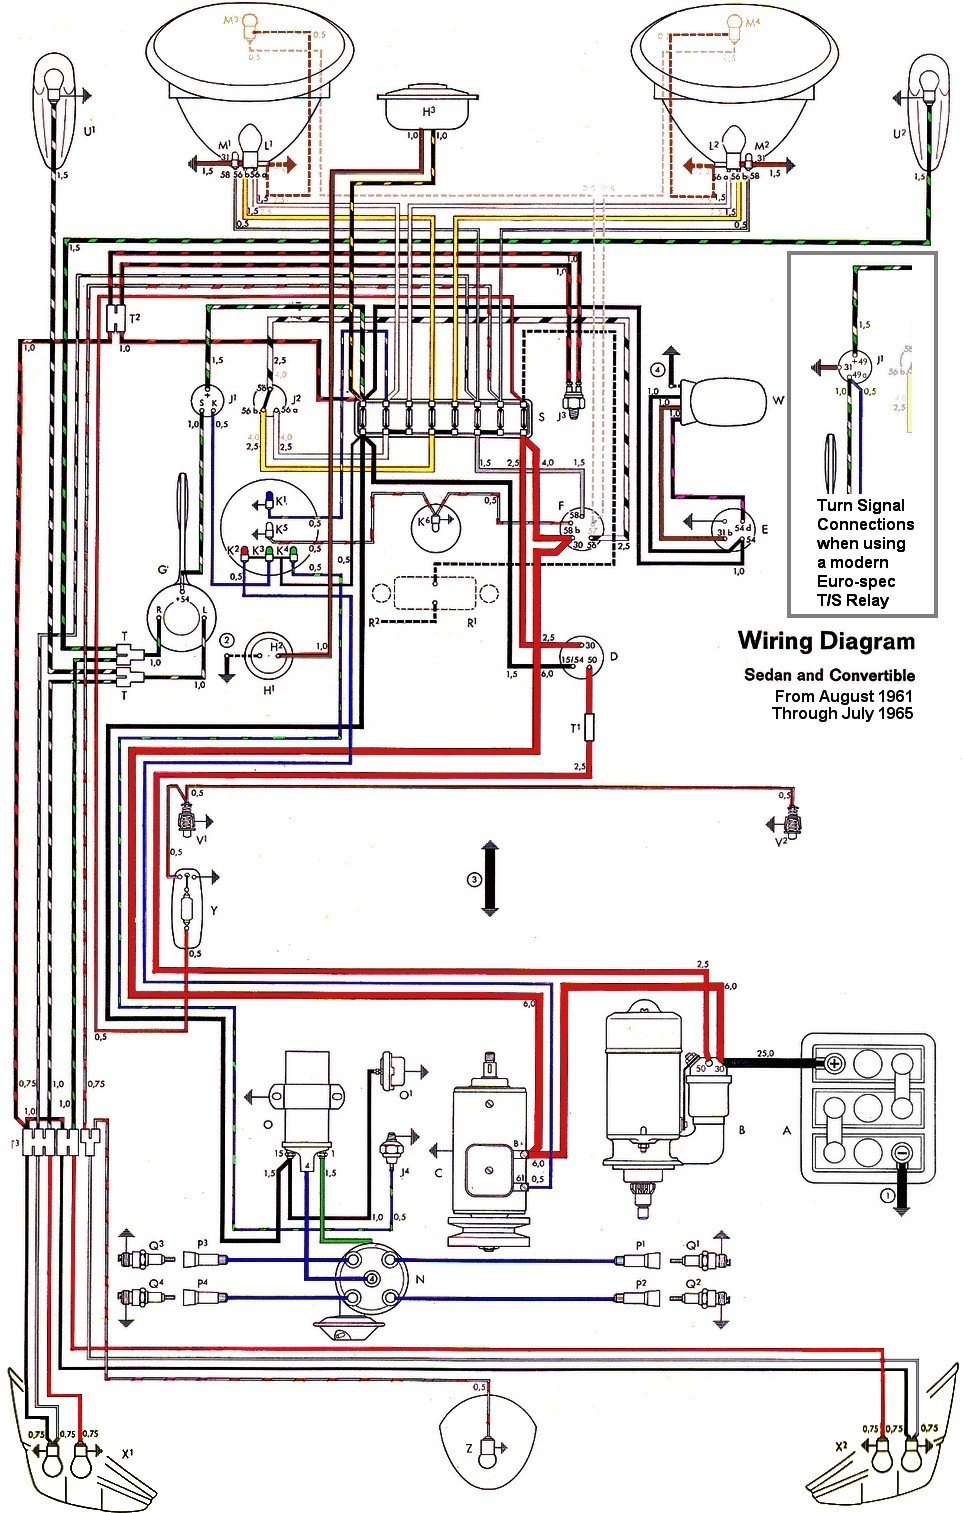 bug_62 65withinset thesamba com type 1 wiring diagrams 1970 vw bug wiring diagram at arjmand.co